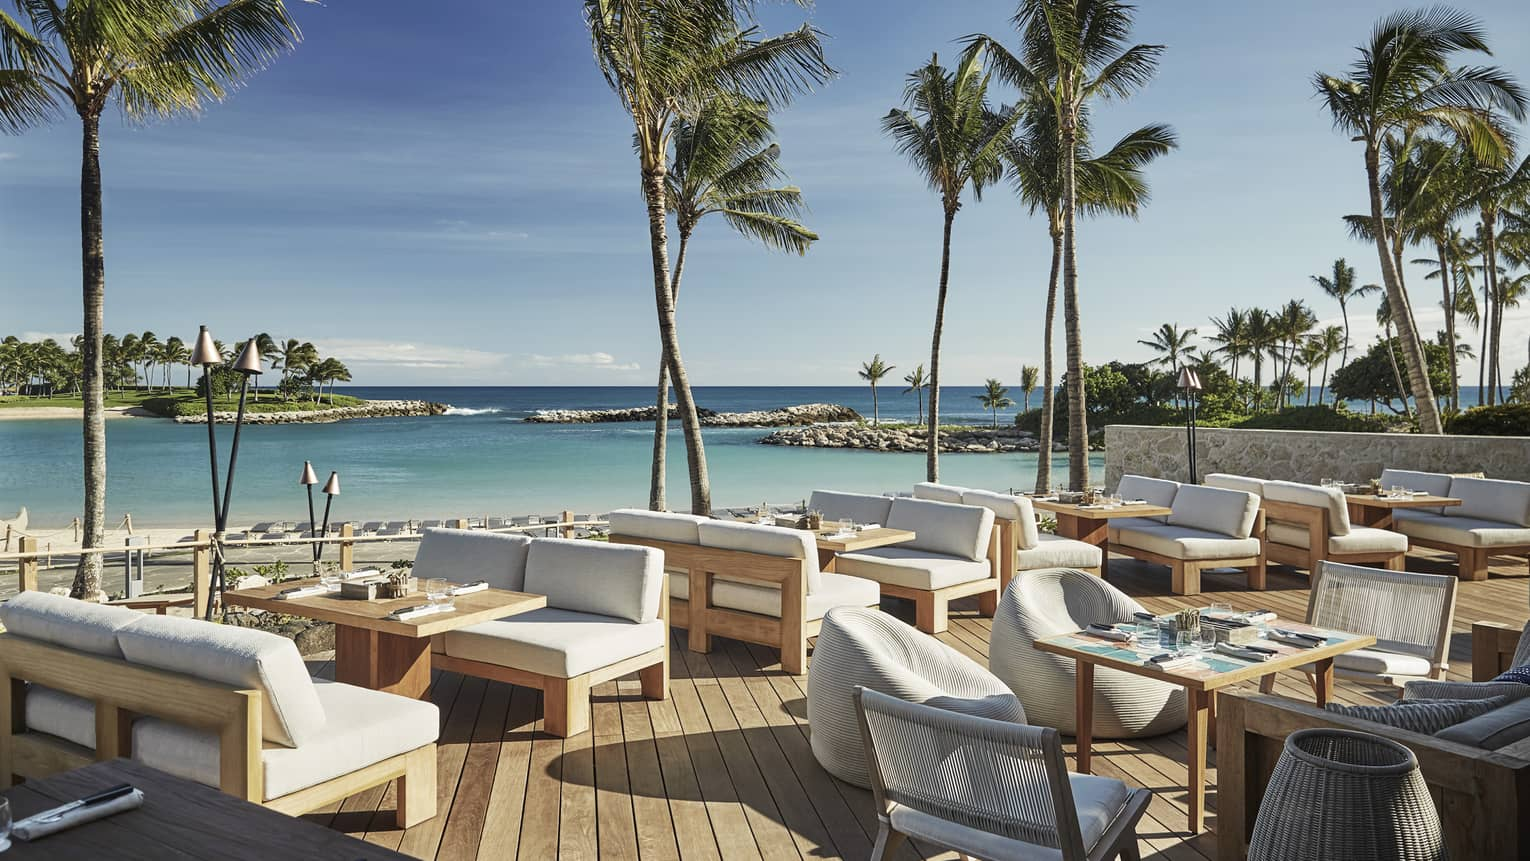 Plush white patio chairs around wood tables on sunny waterside Minas lounge